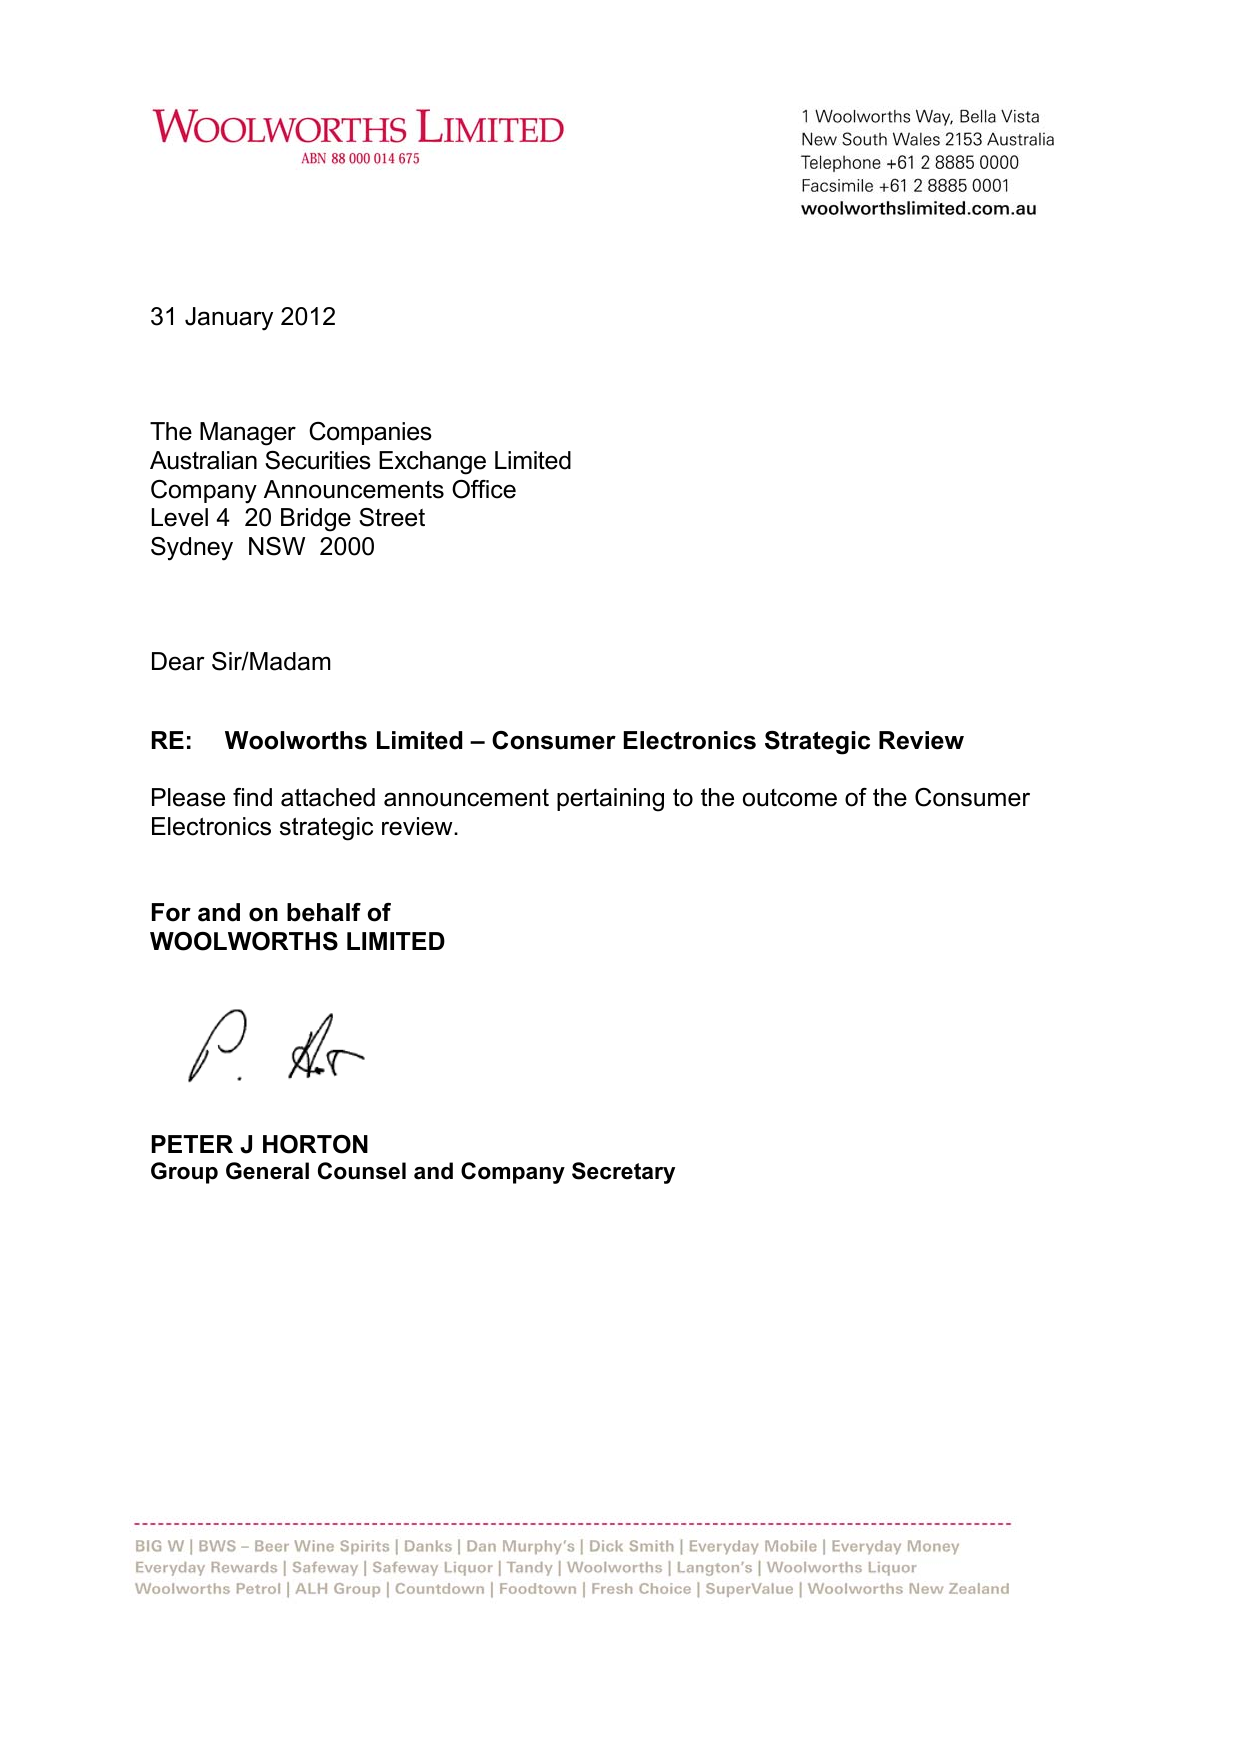 31 January 2012 The Manager Companies Australian Securities Exchange